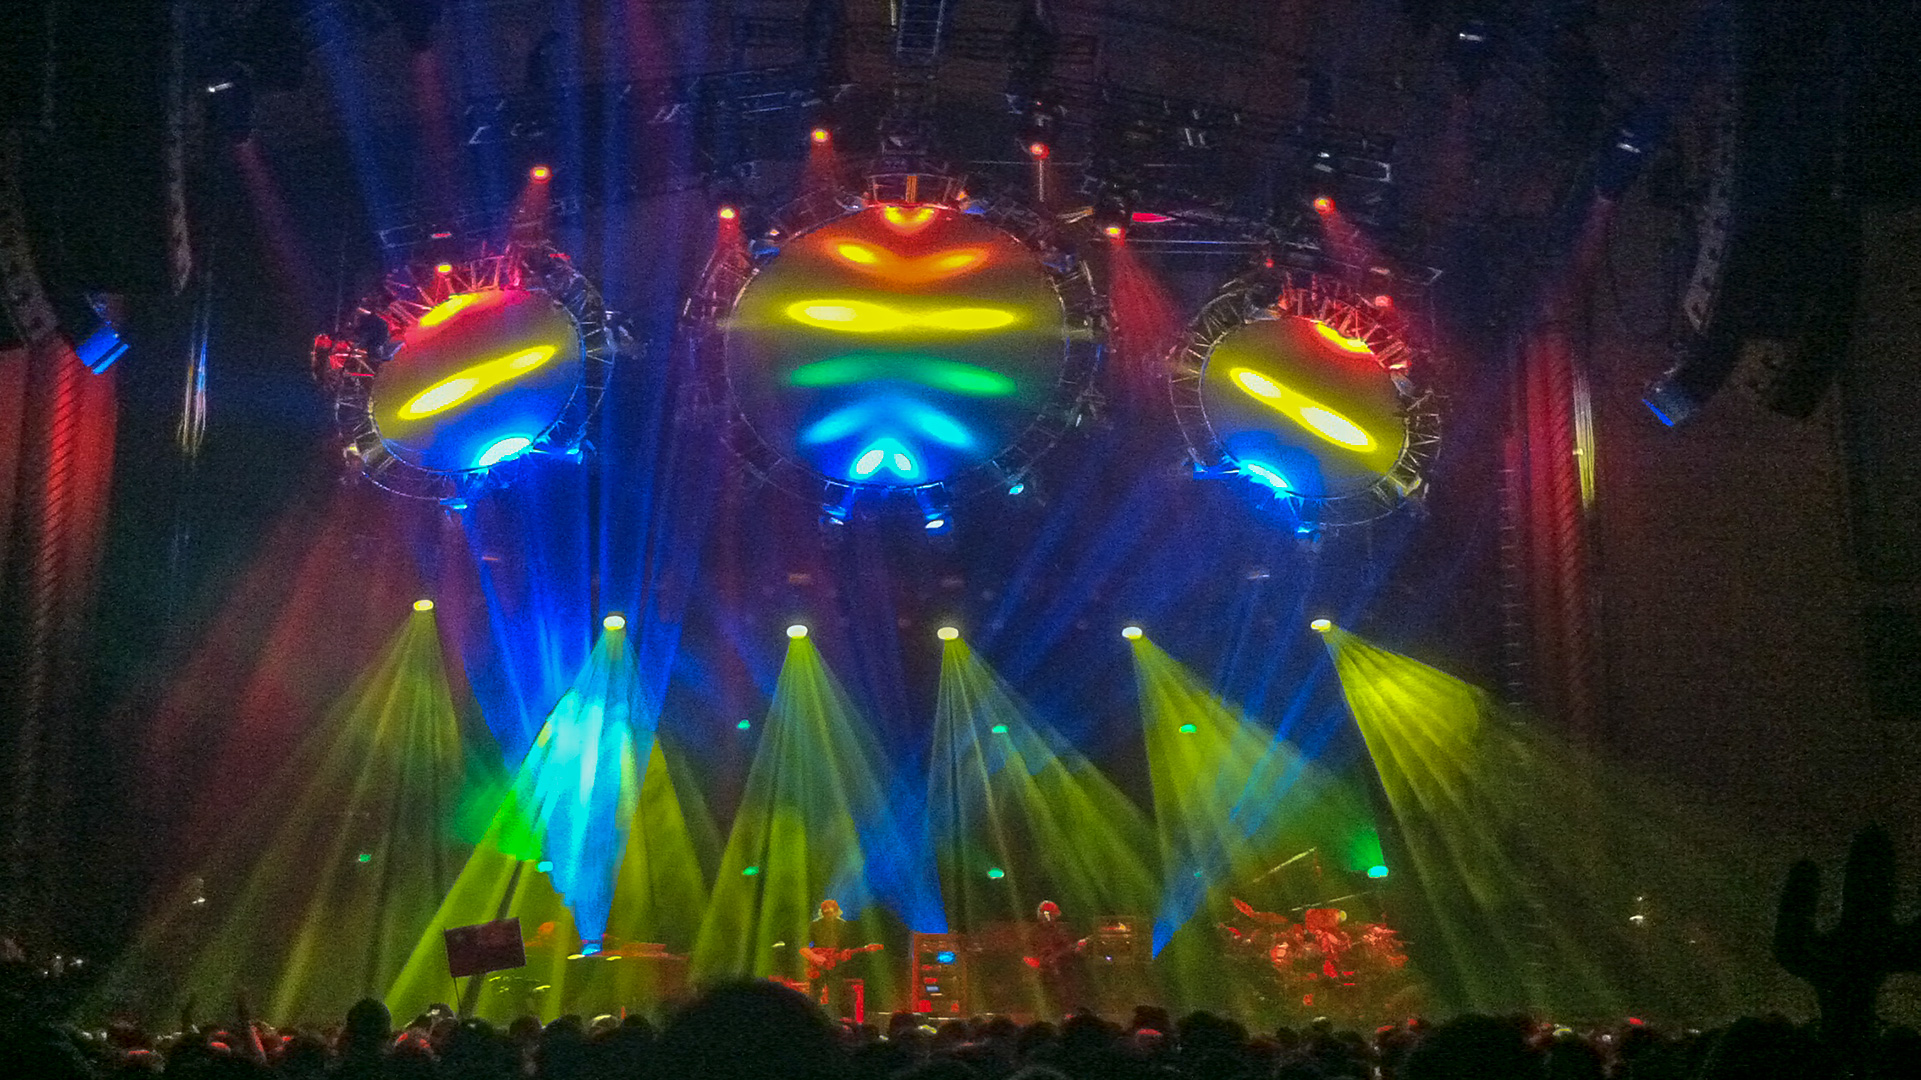 Phish on stage with an amazing light show